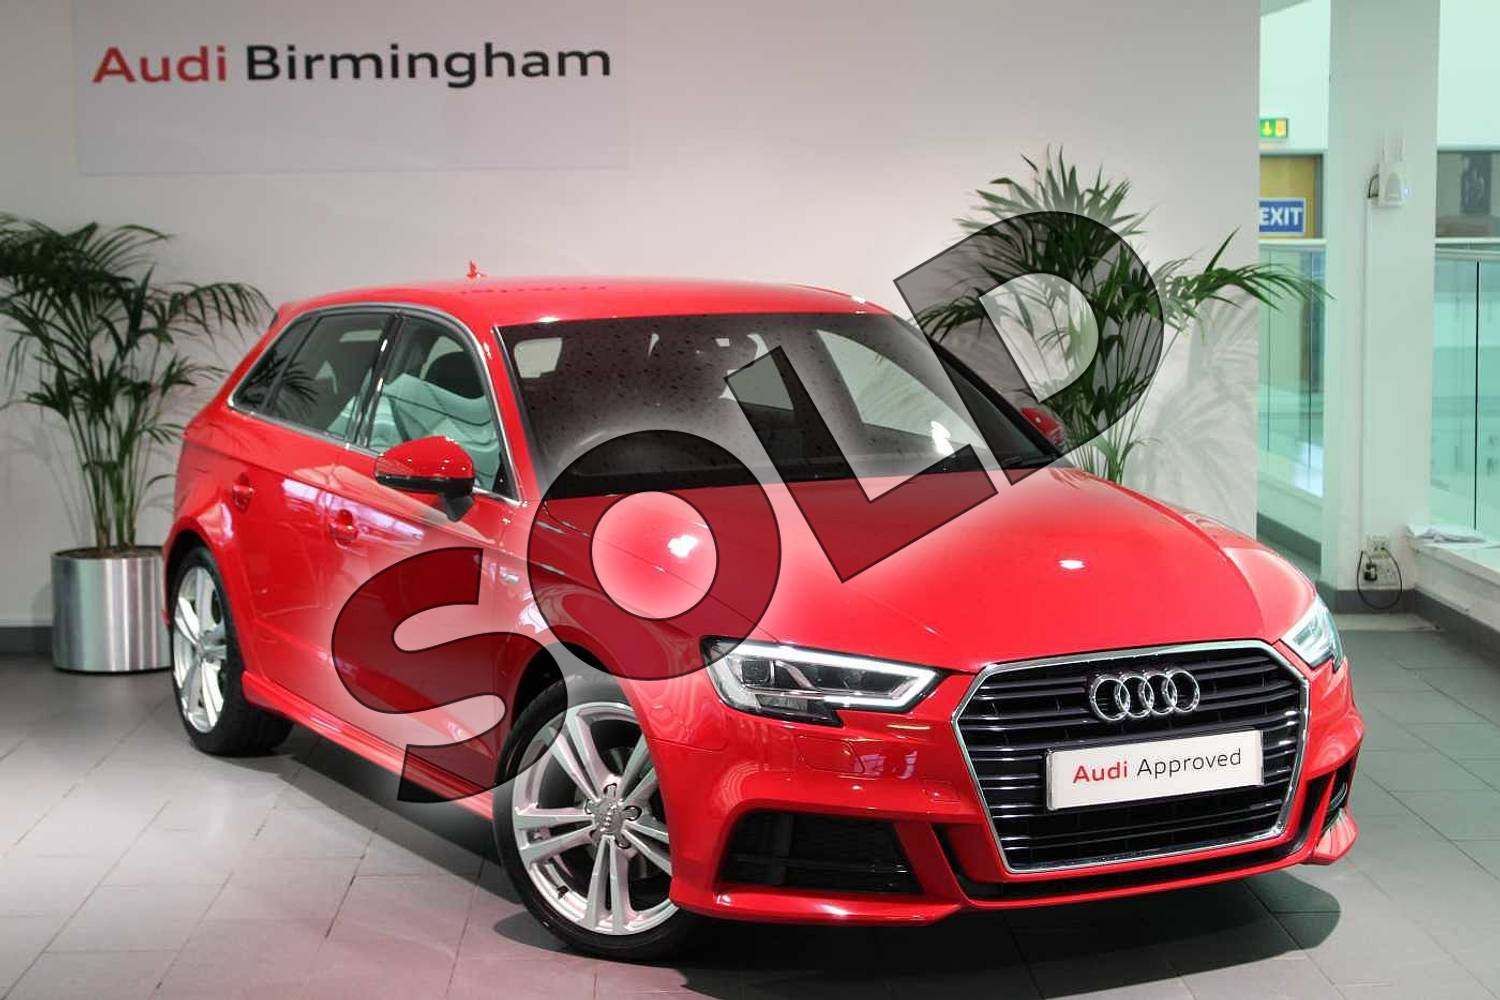 2016 Audi A3 Sportback 1.4 TFSI S Line 5dr in Tango Red Metallic at Birmingham Audi